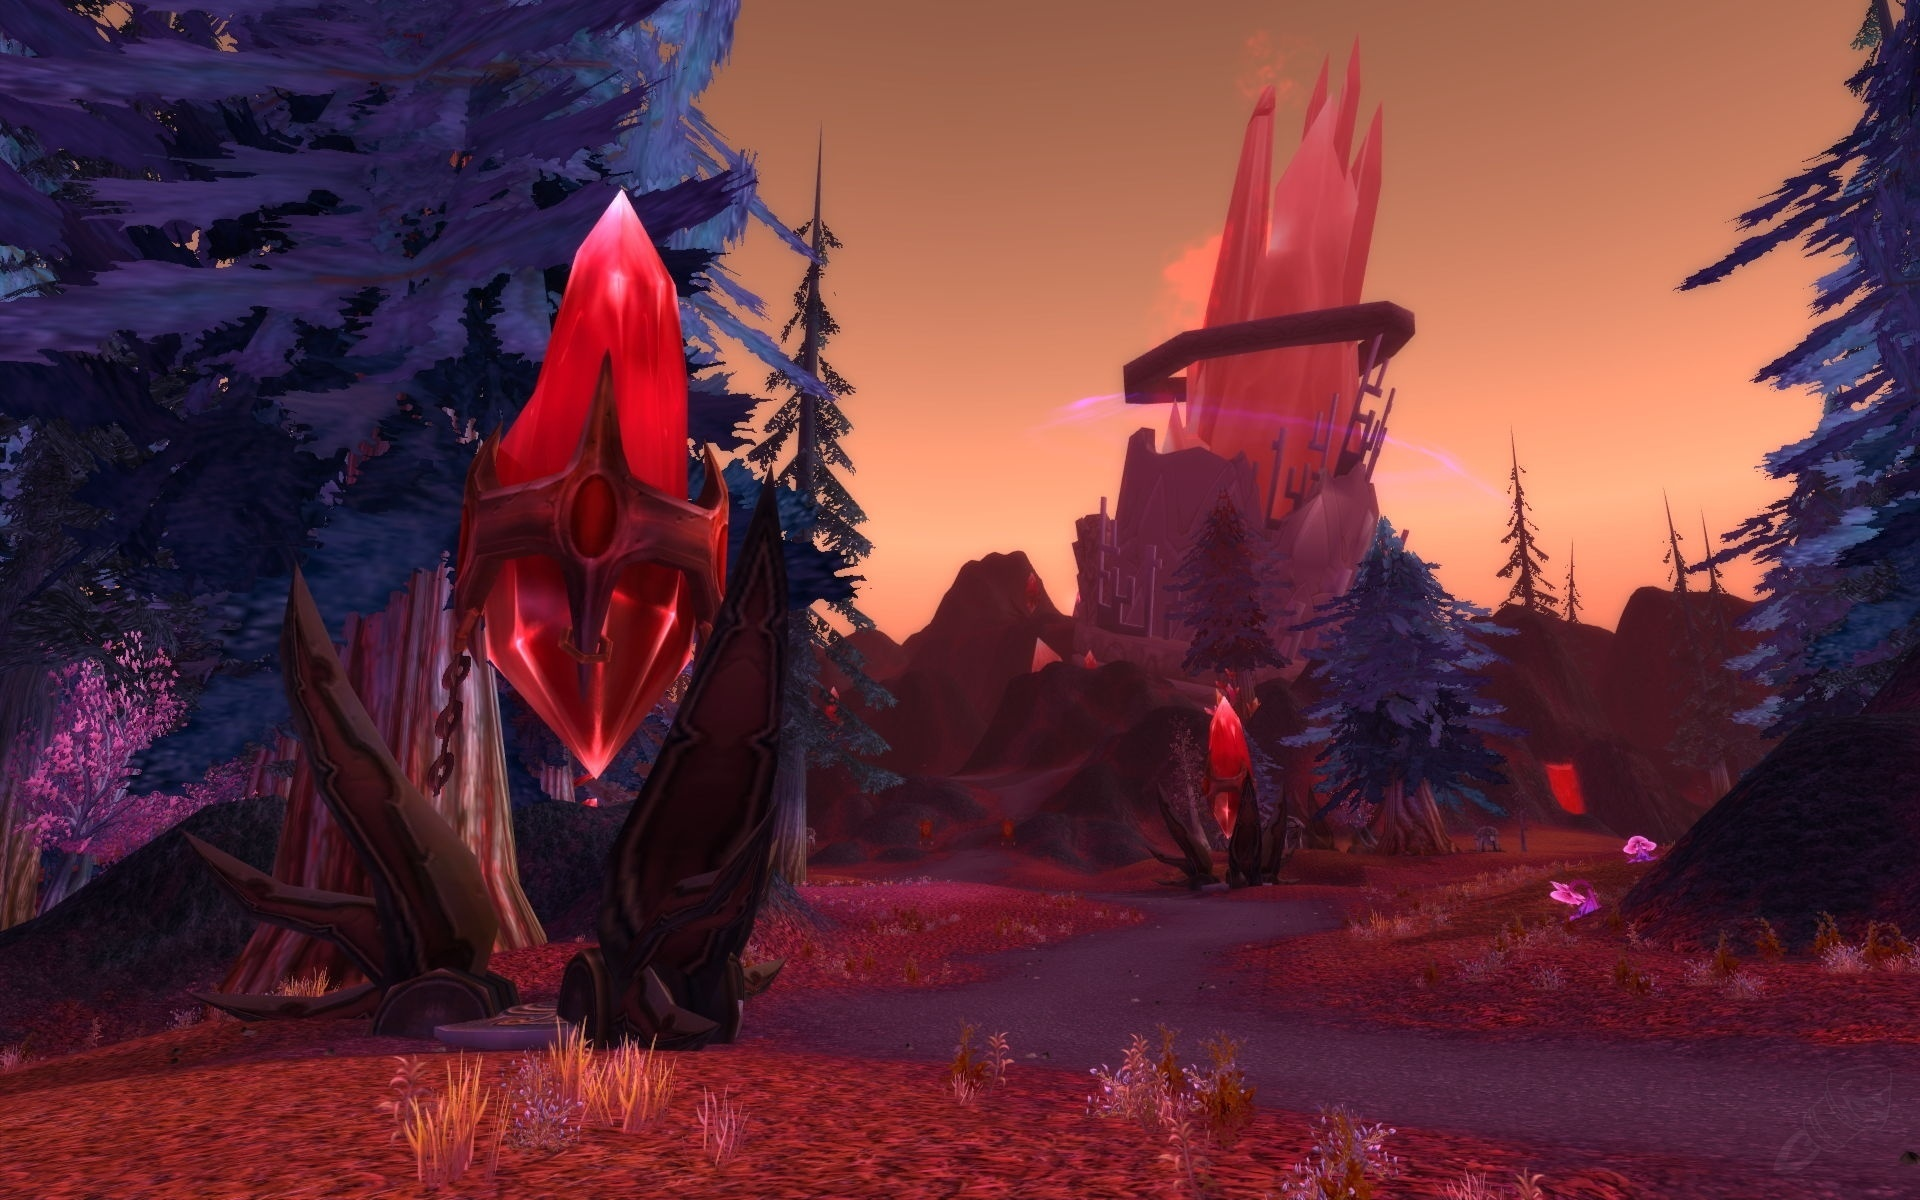 How do you get to bloodmyst isle on wow - answers.com